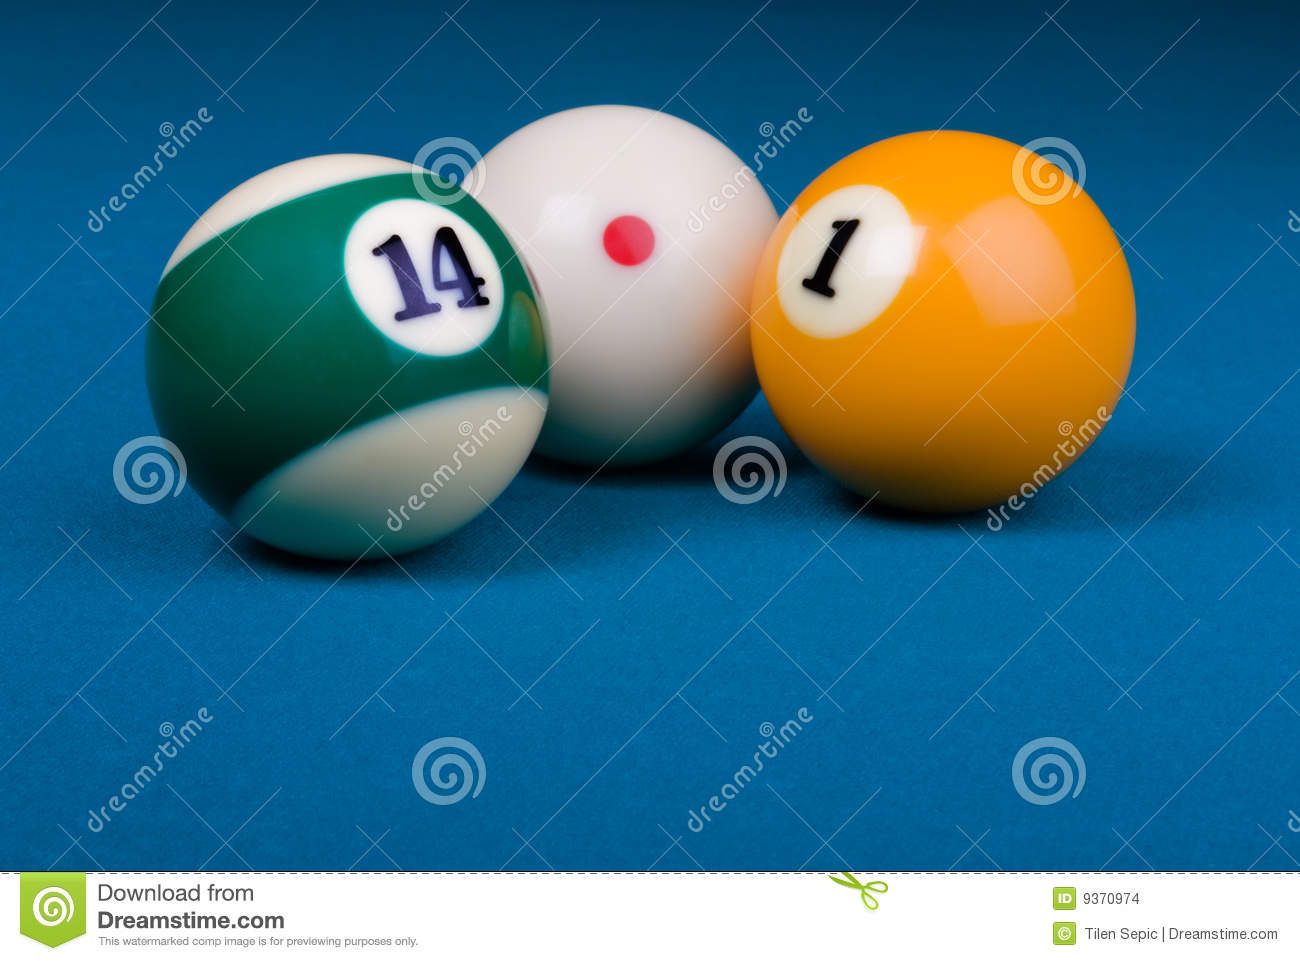 Straight pool 14 1 composition stock images image 9370974 for Pool game show